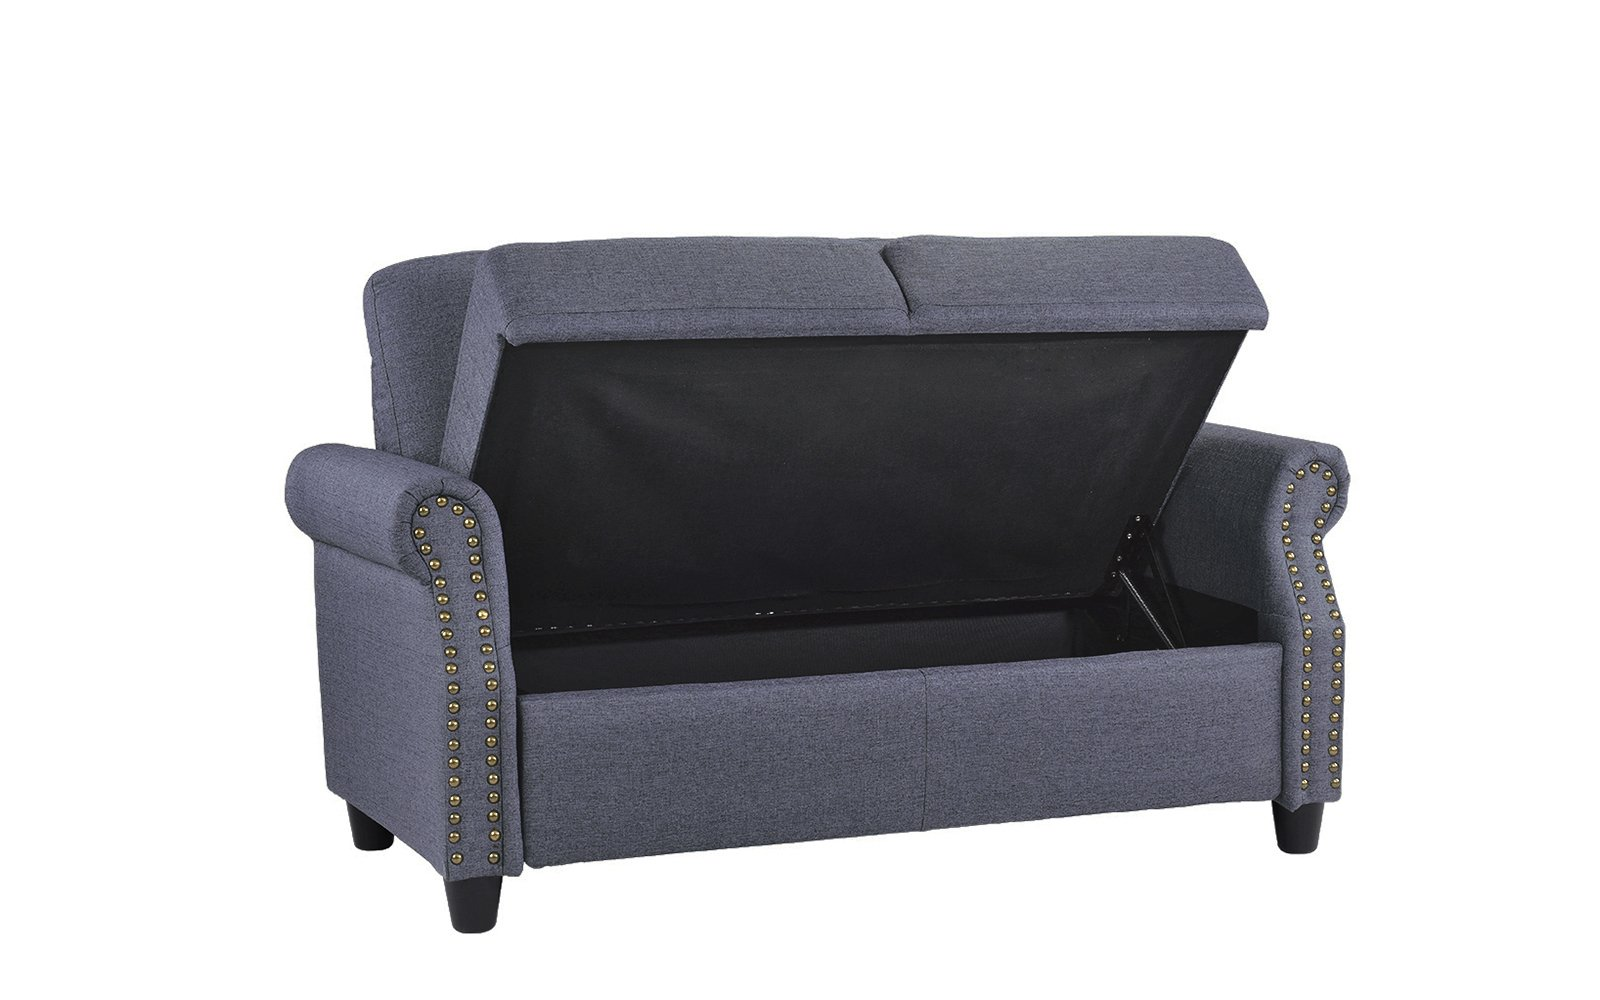 Classic Living Room Linen Loveseat with Nailhead Trim and Storage Space (Blue) by Sofamania (Image #5)